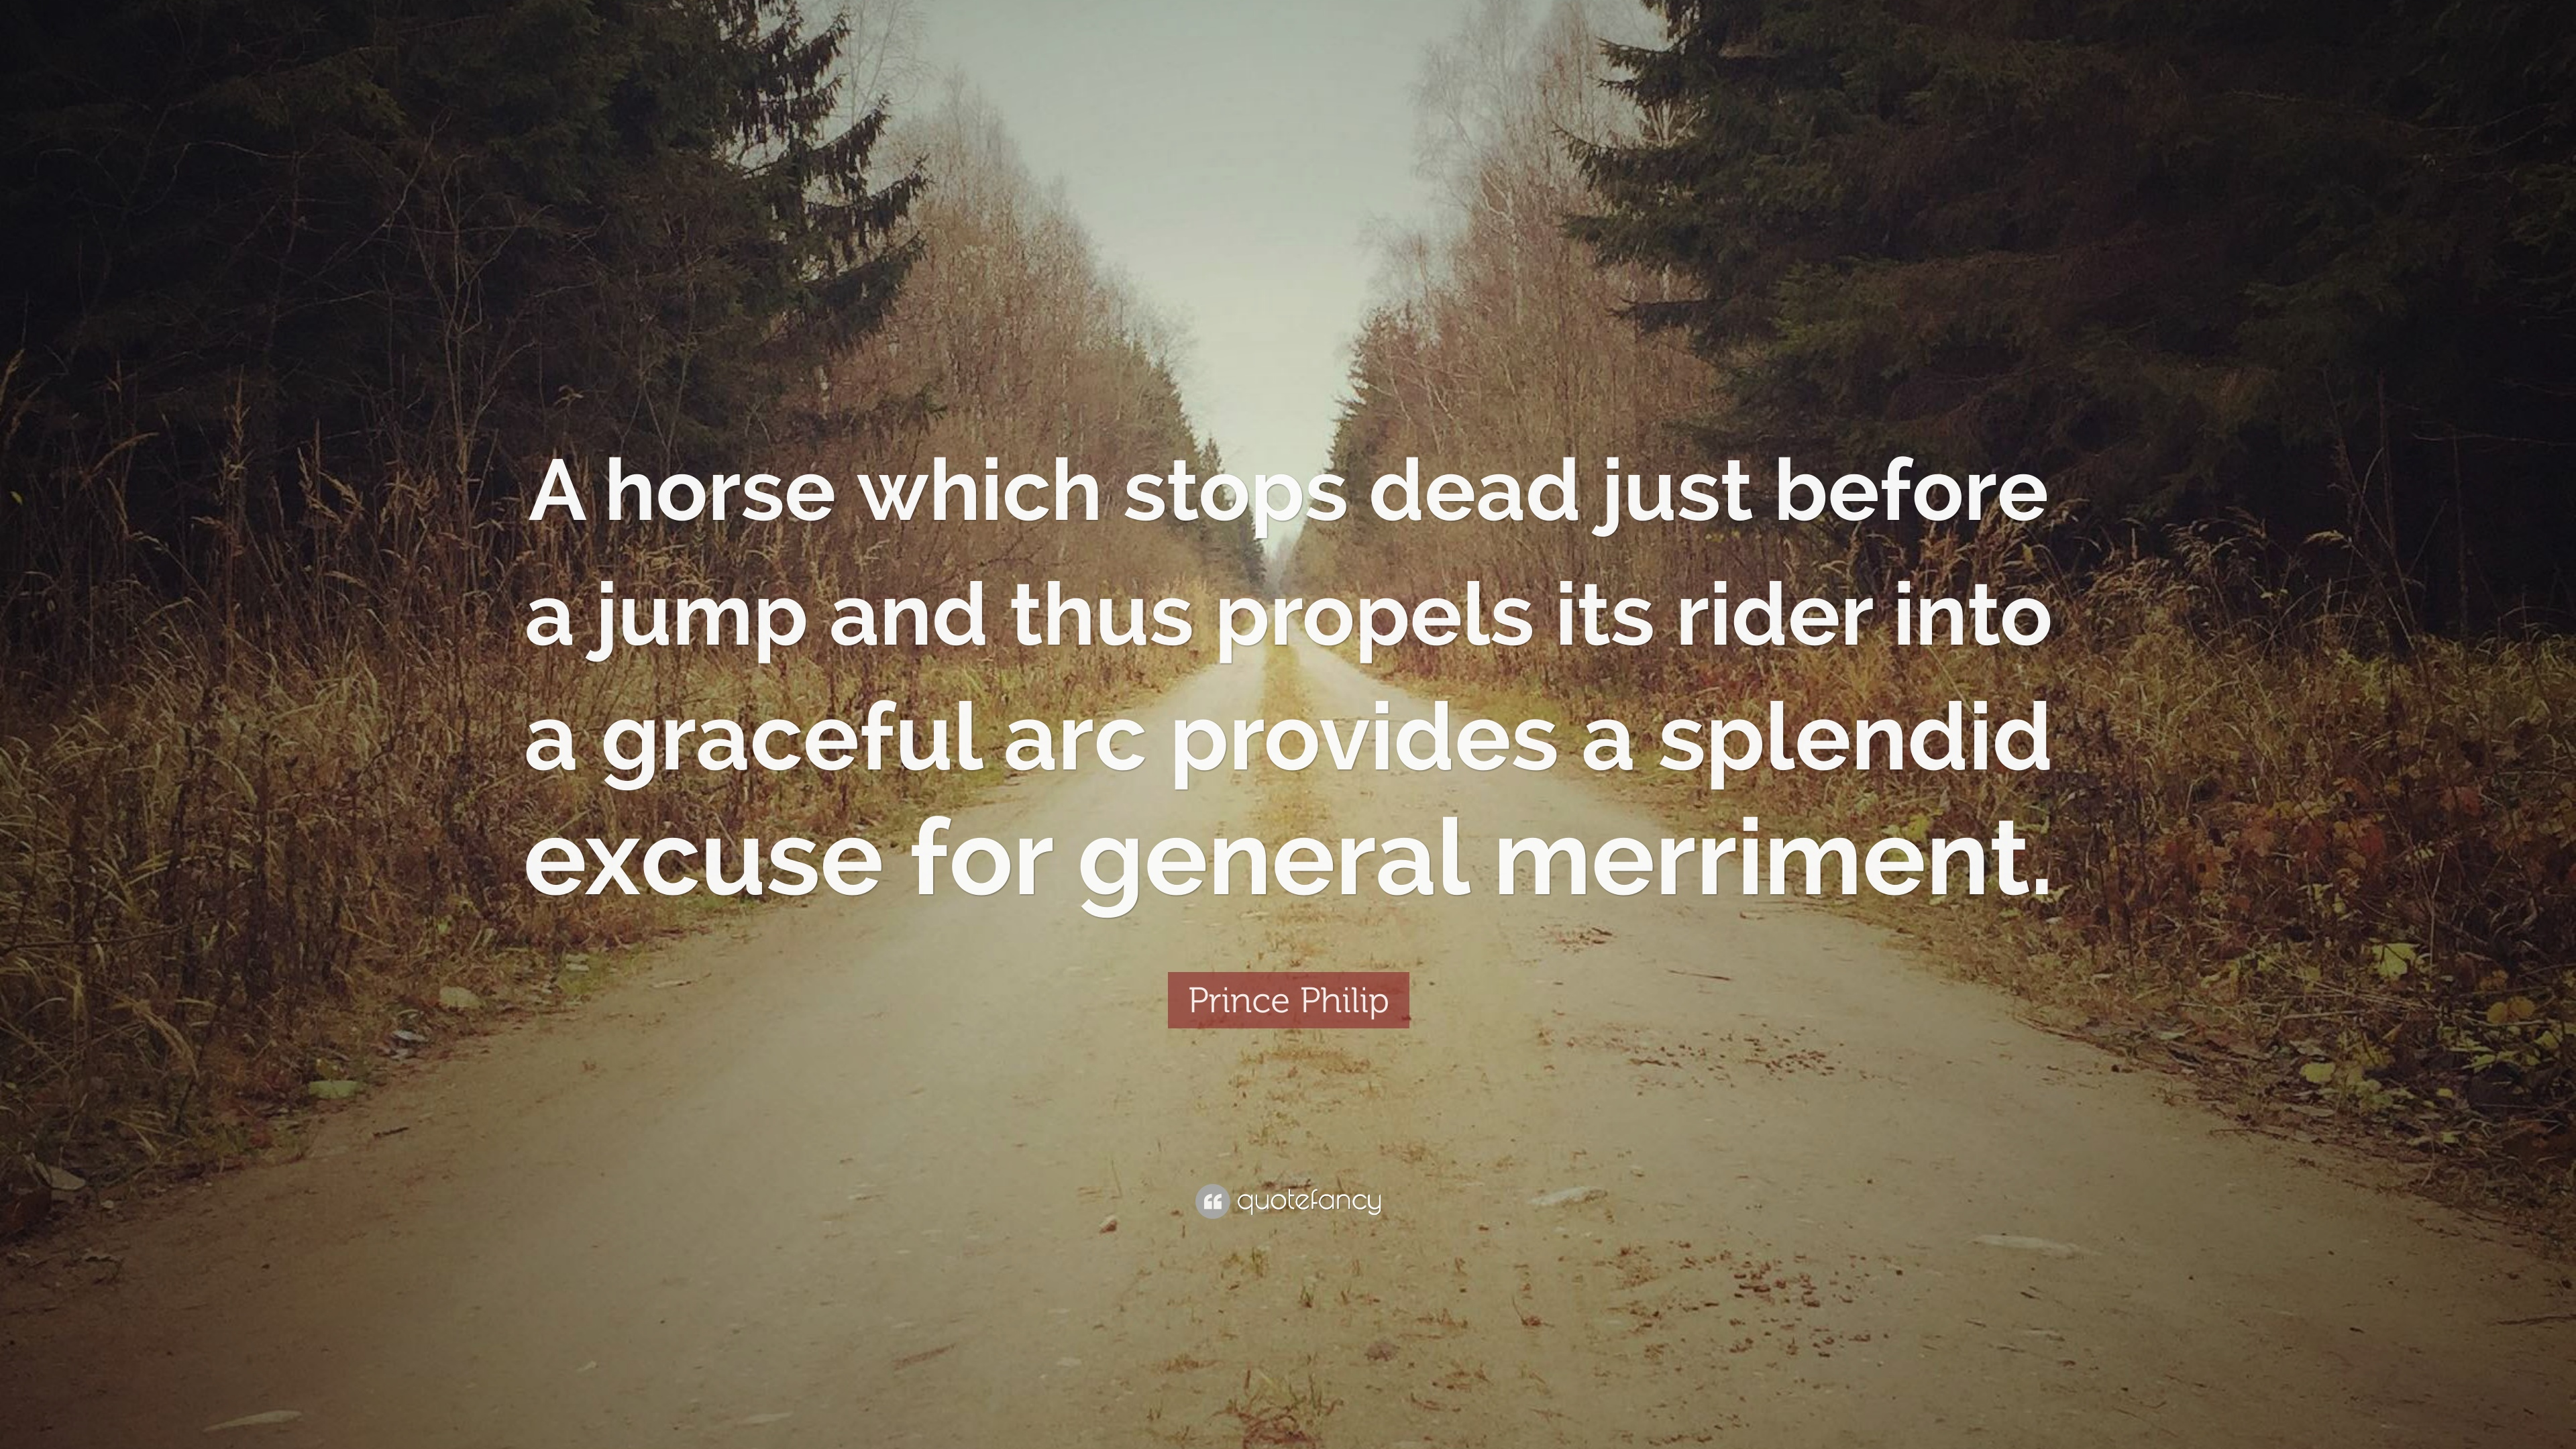 Prince Philip Quote A Horse Which Stops Dead Just Before A Jump And Thus Propels Its Rider Into A Graceful Arc Provides A Splendid Excuse Fo 7 Wallpapers Quotefancy